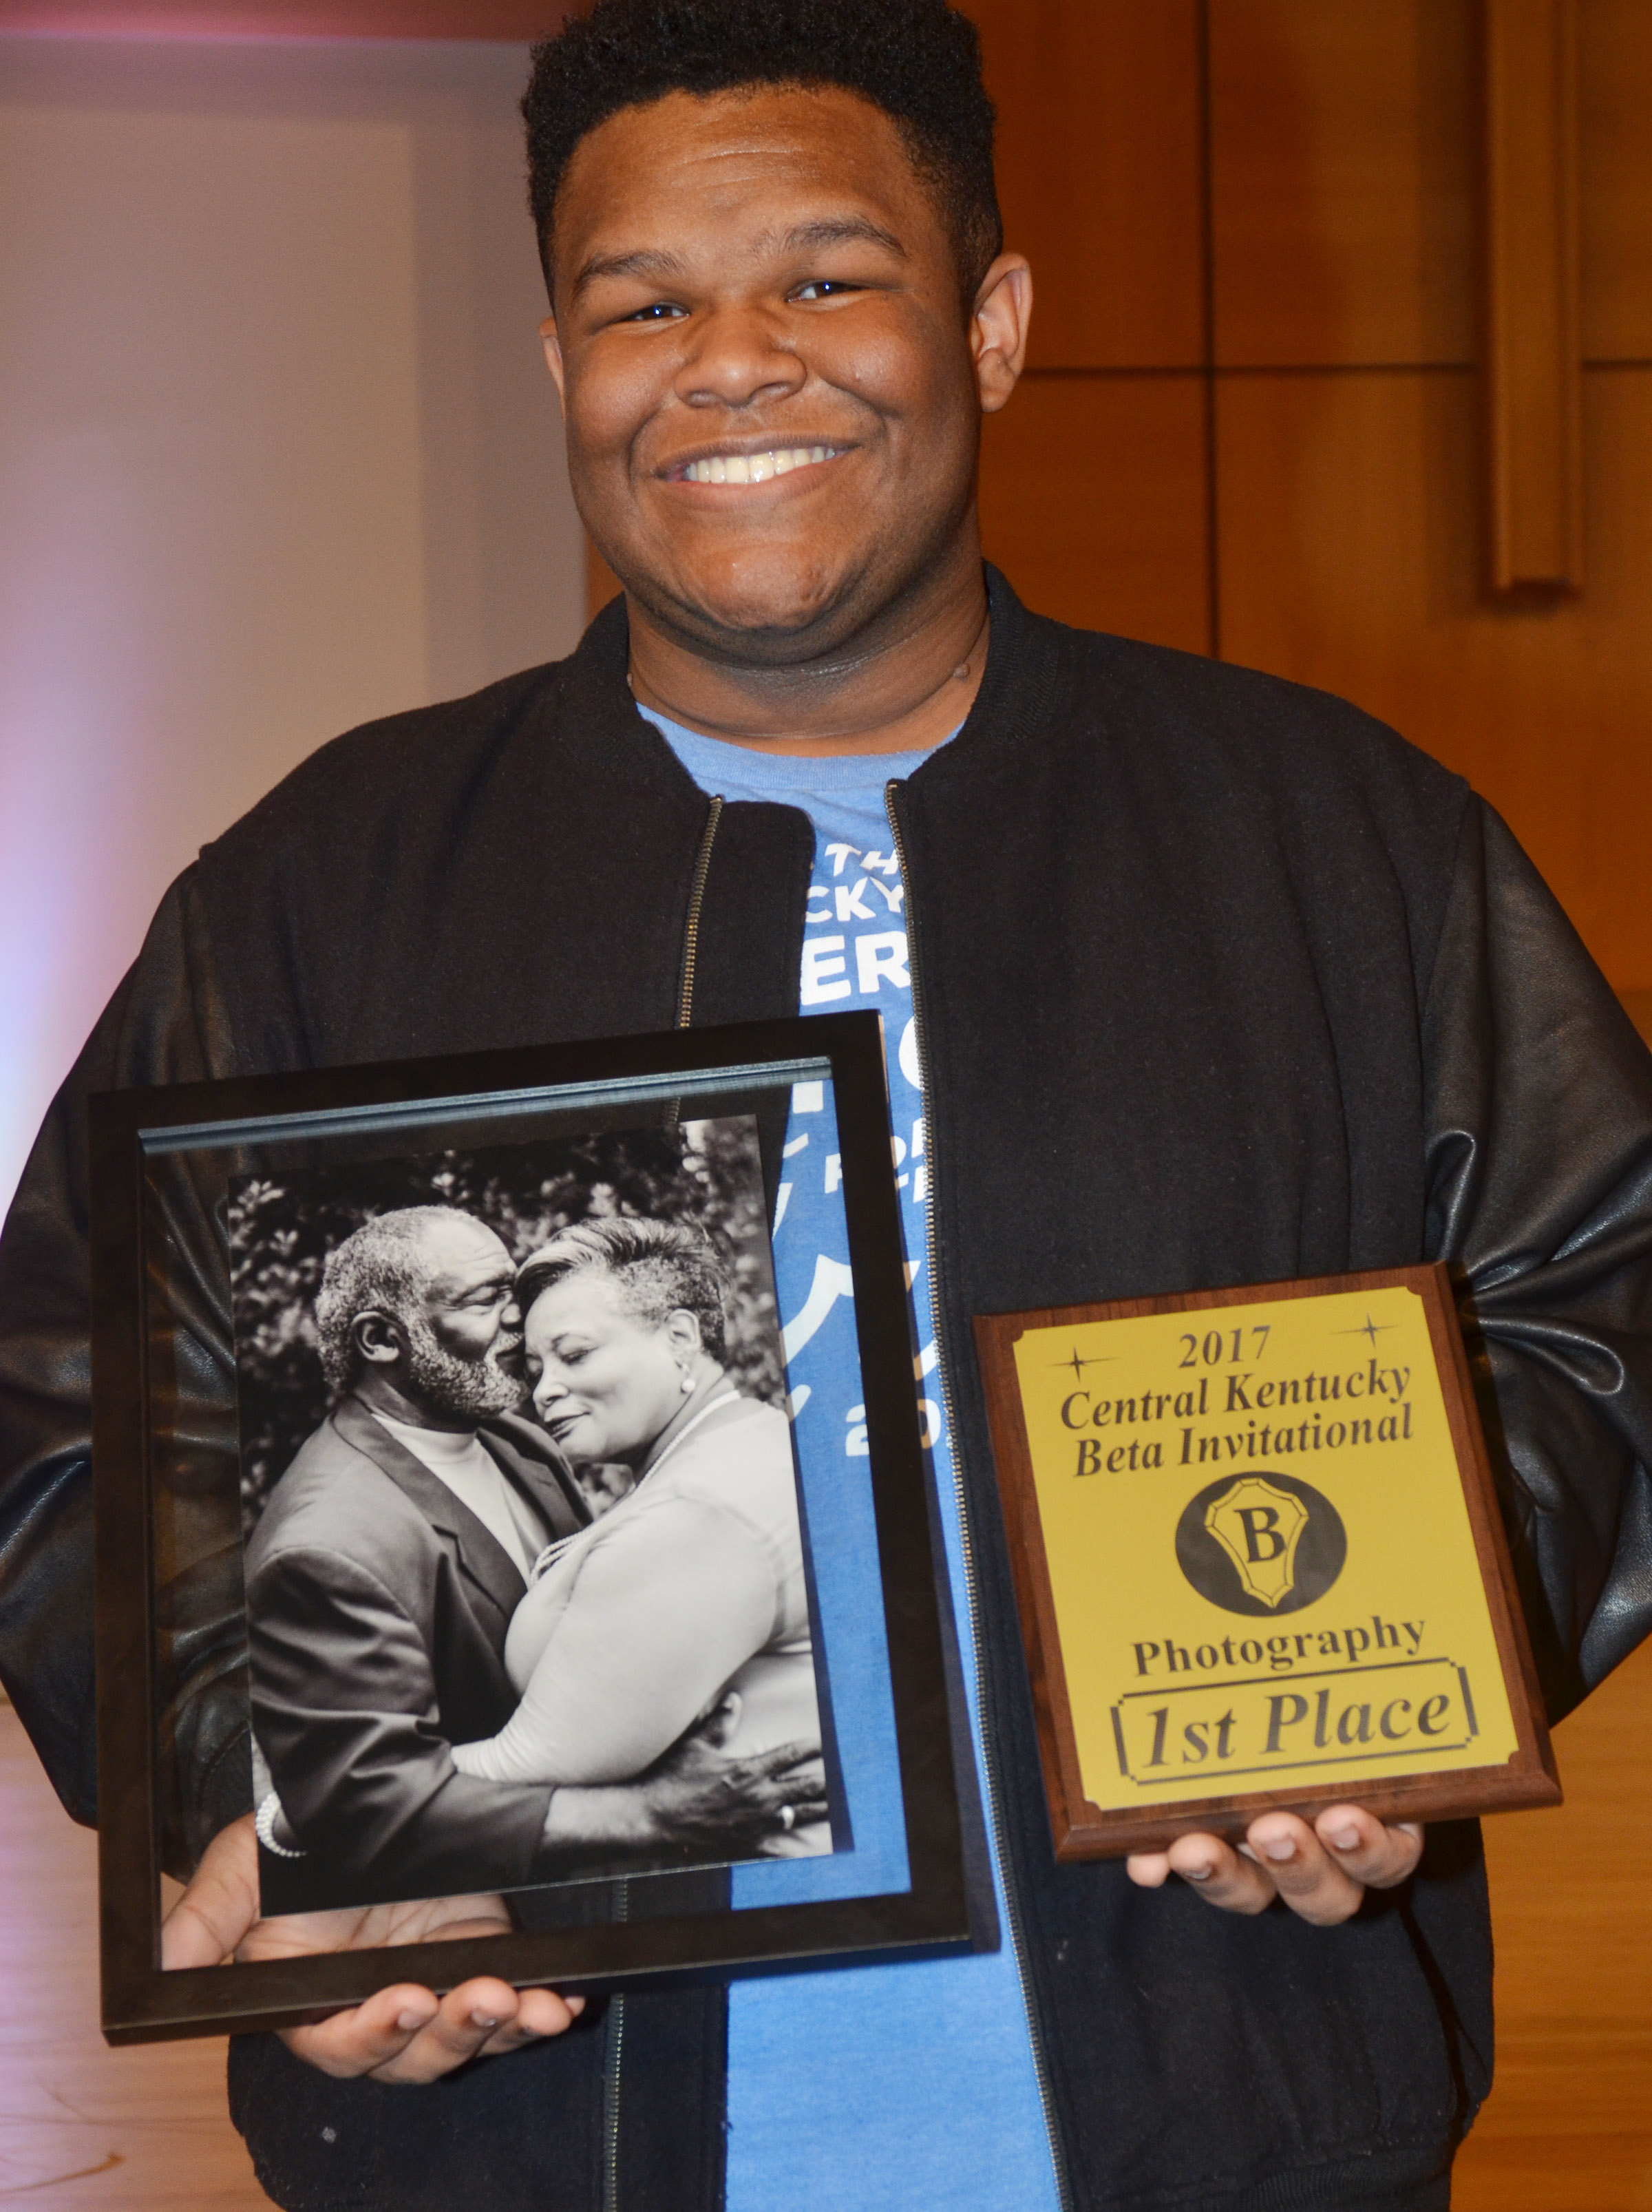 CHS Beta Club members brought home several awards on Thursday, Oct. 19, at the annual Central Kentucky Beta Invitational. Jeremiah Jackson, a junior, won first place in the photography competition.